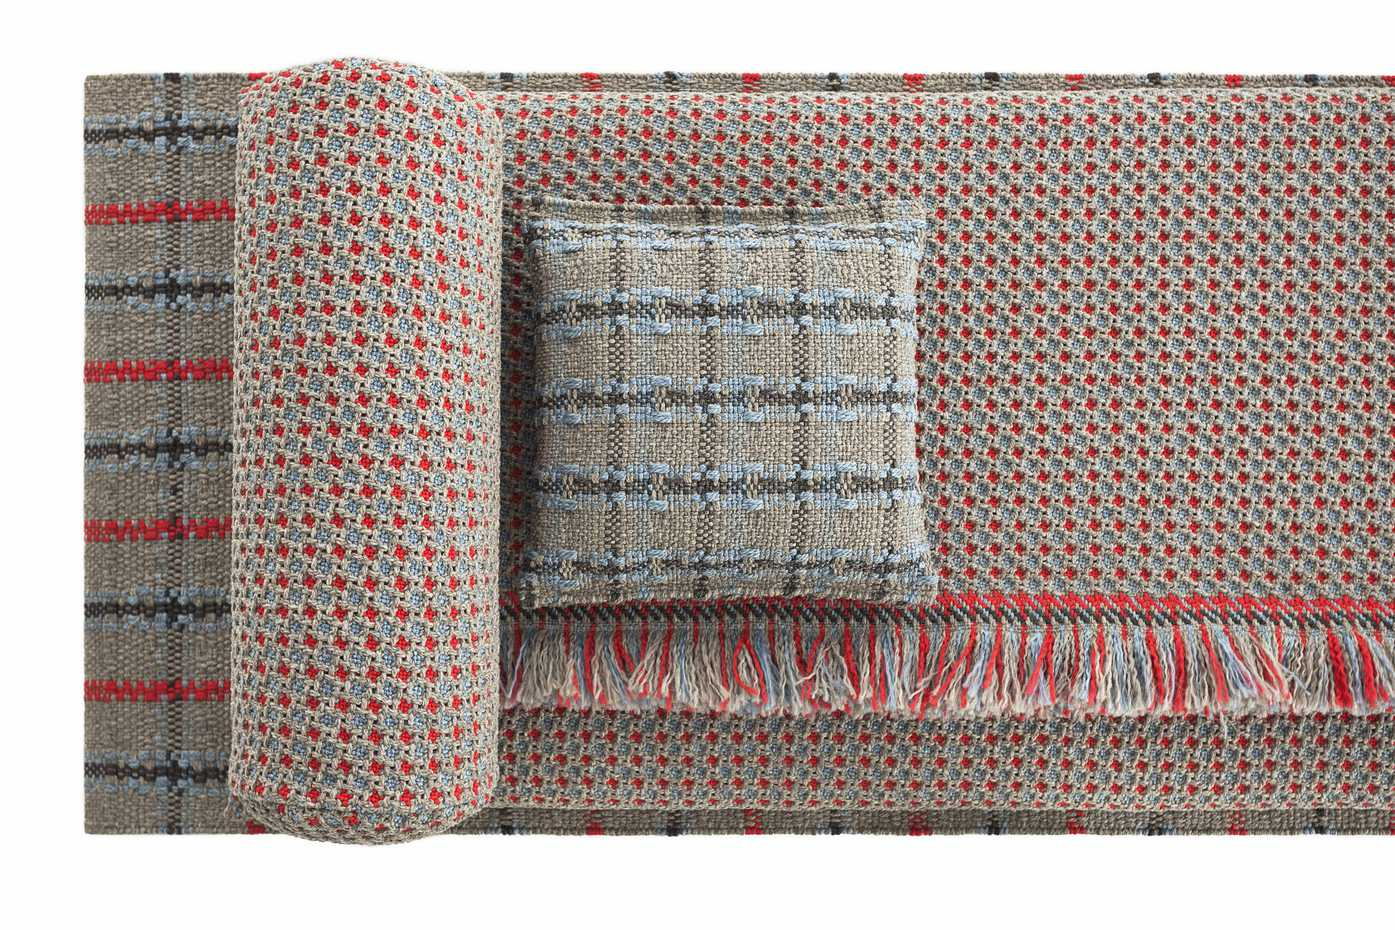 Garden Layers Cushions  by Gan Rugs product image 6